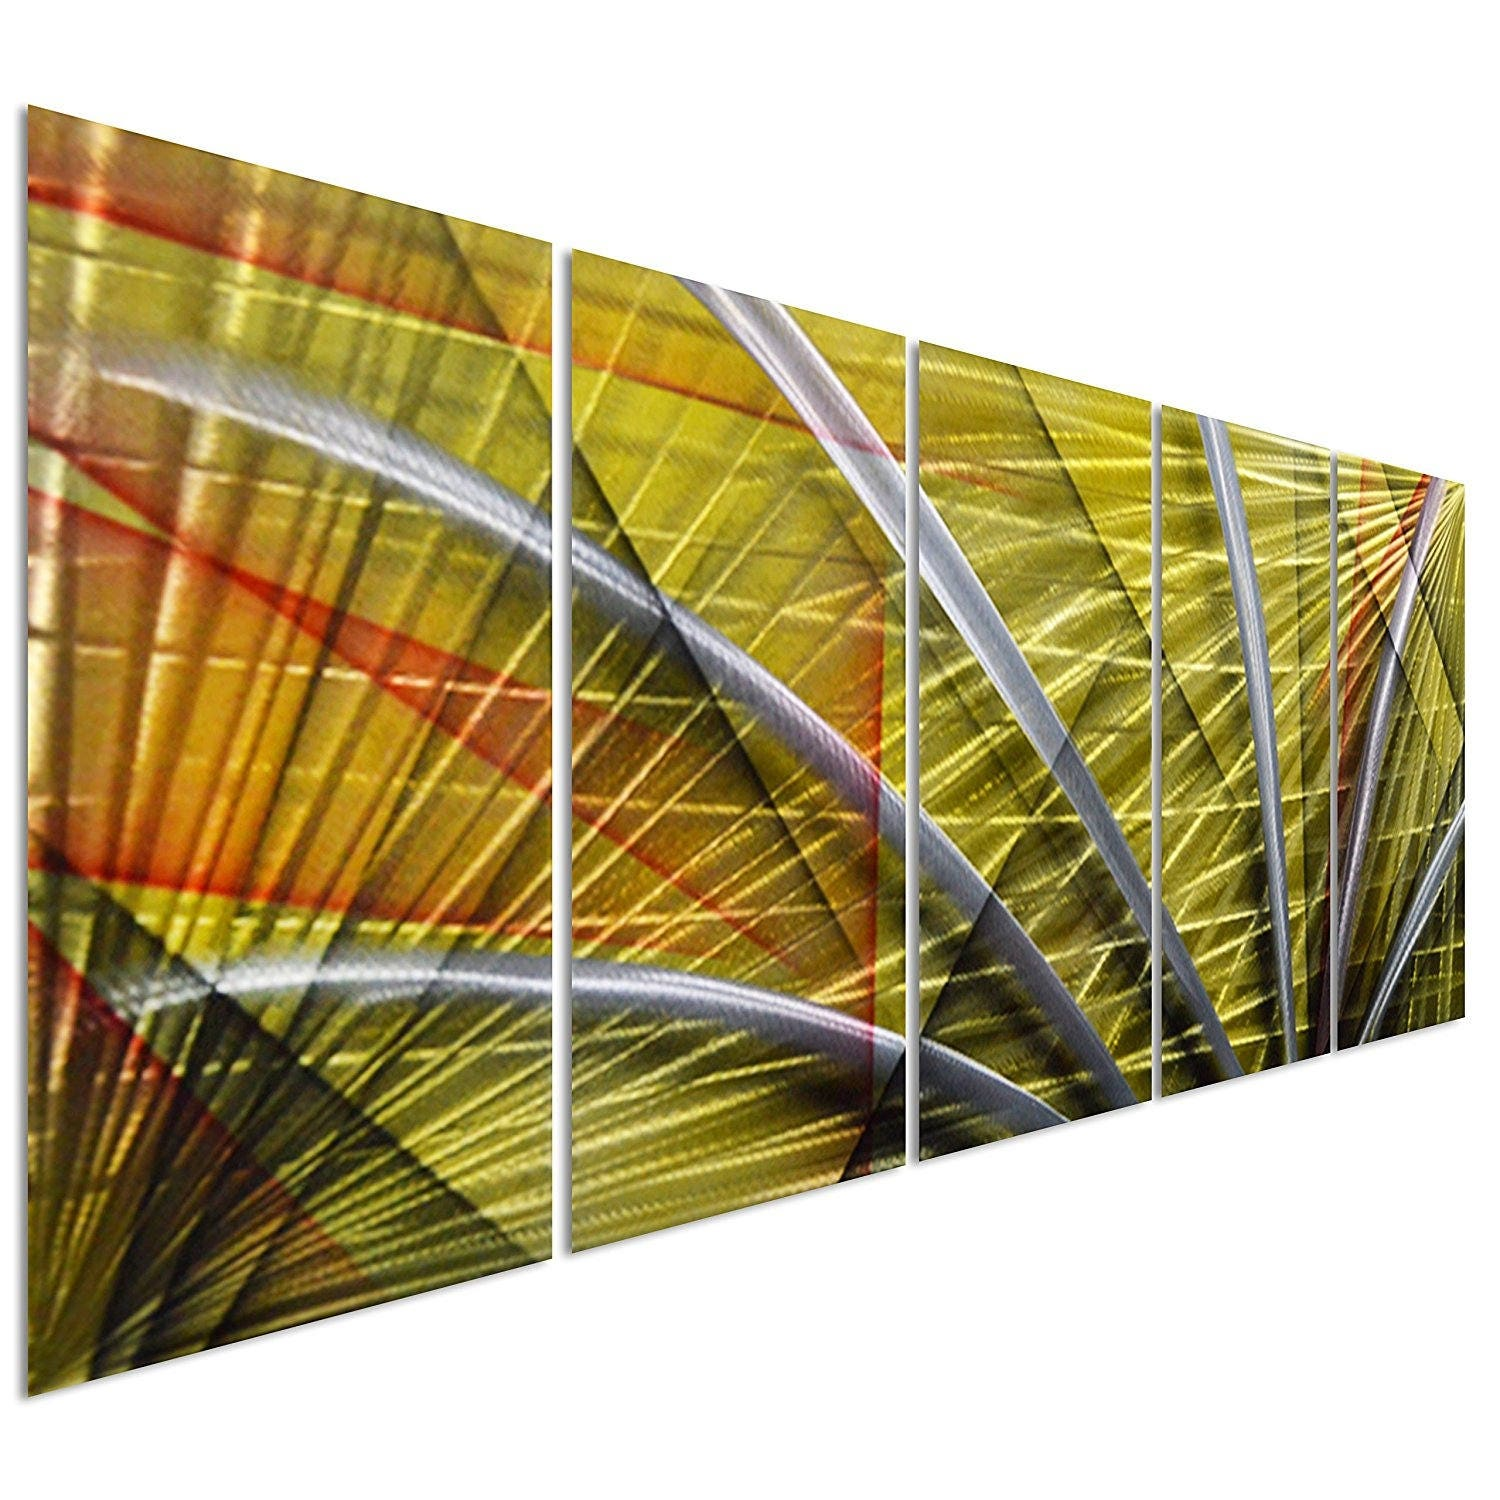 Silver Abstract Figurative Lines on Yellow Large Modern